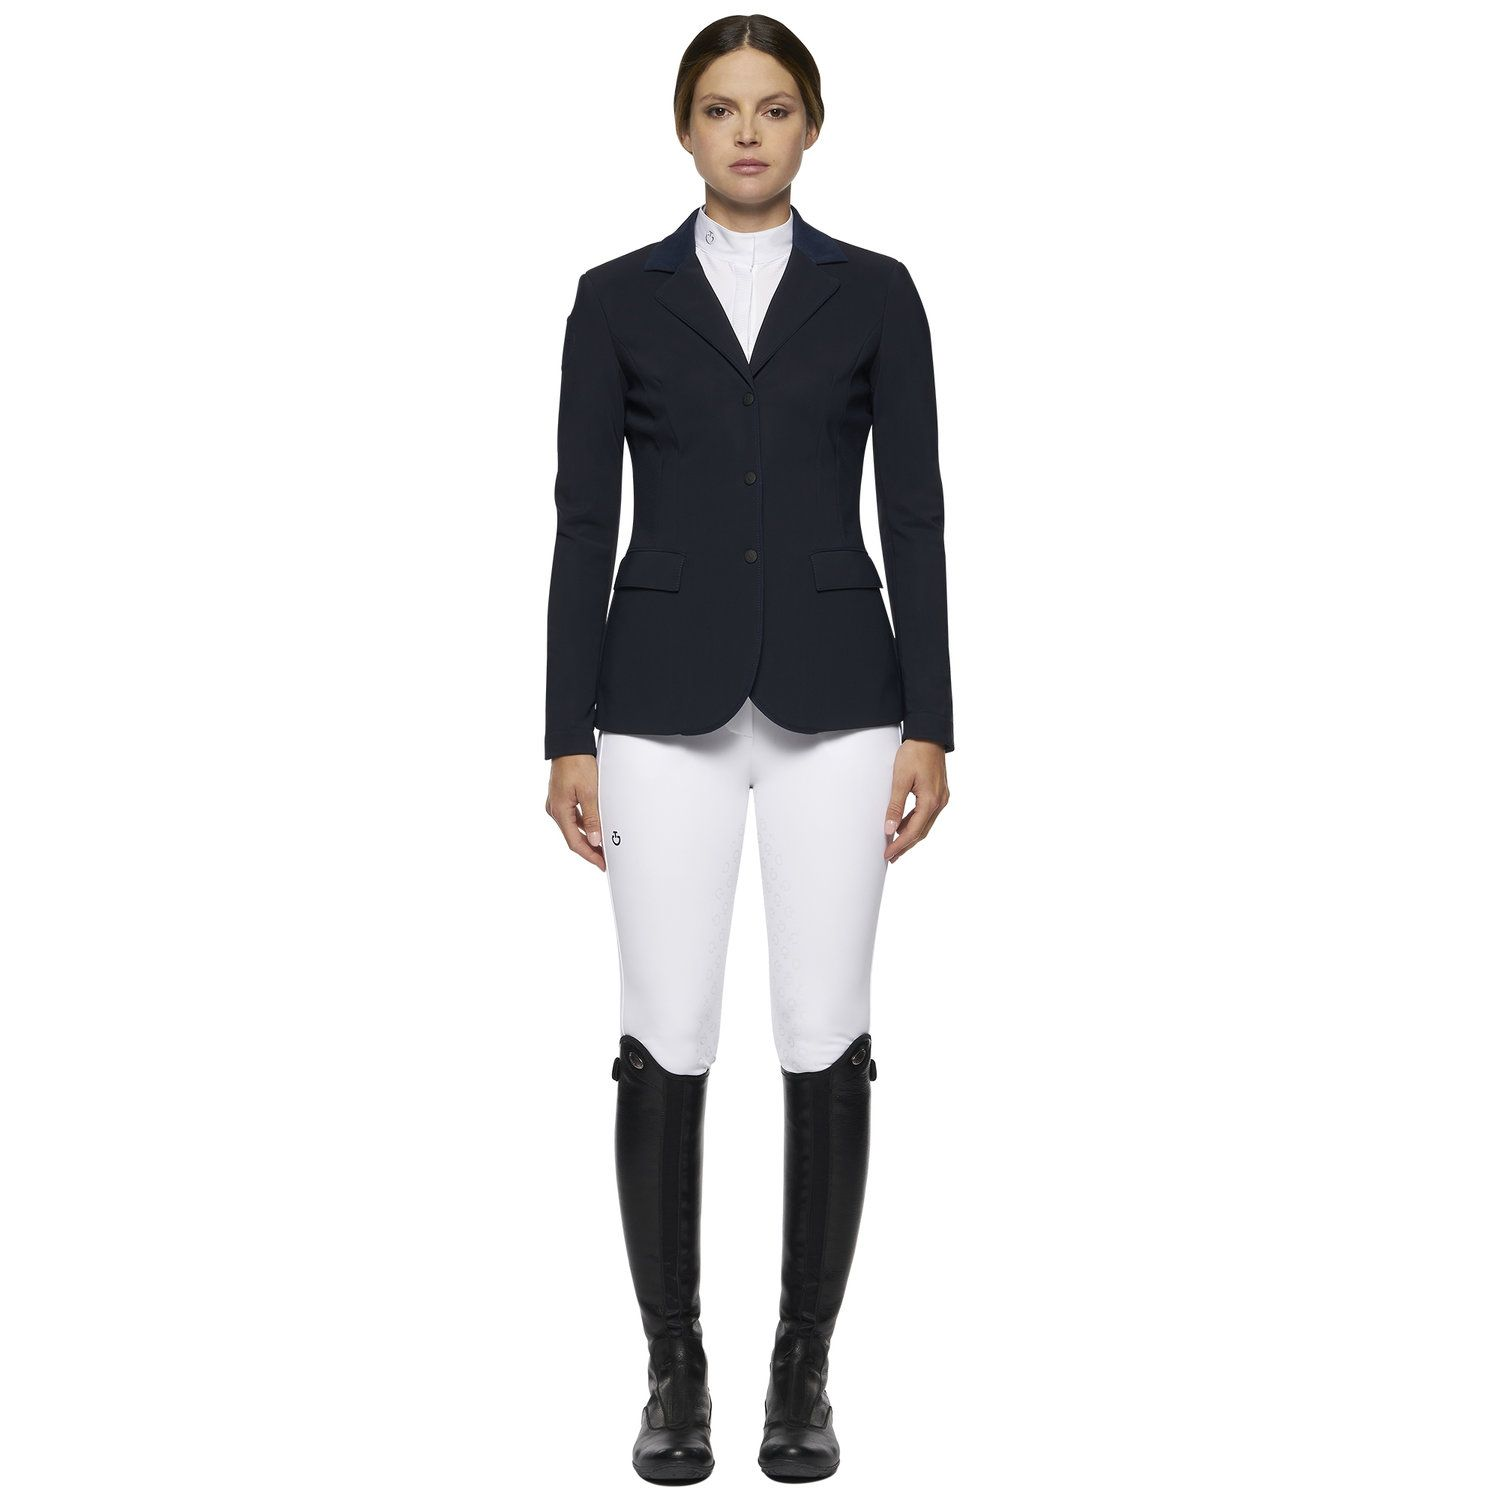 Women's zip riding jacket with perforated inserts.